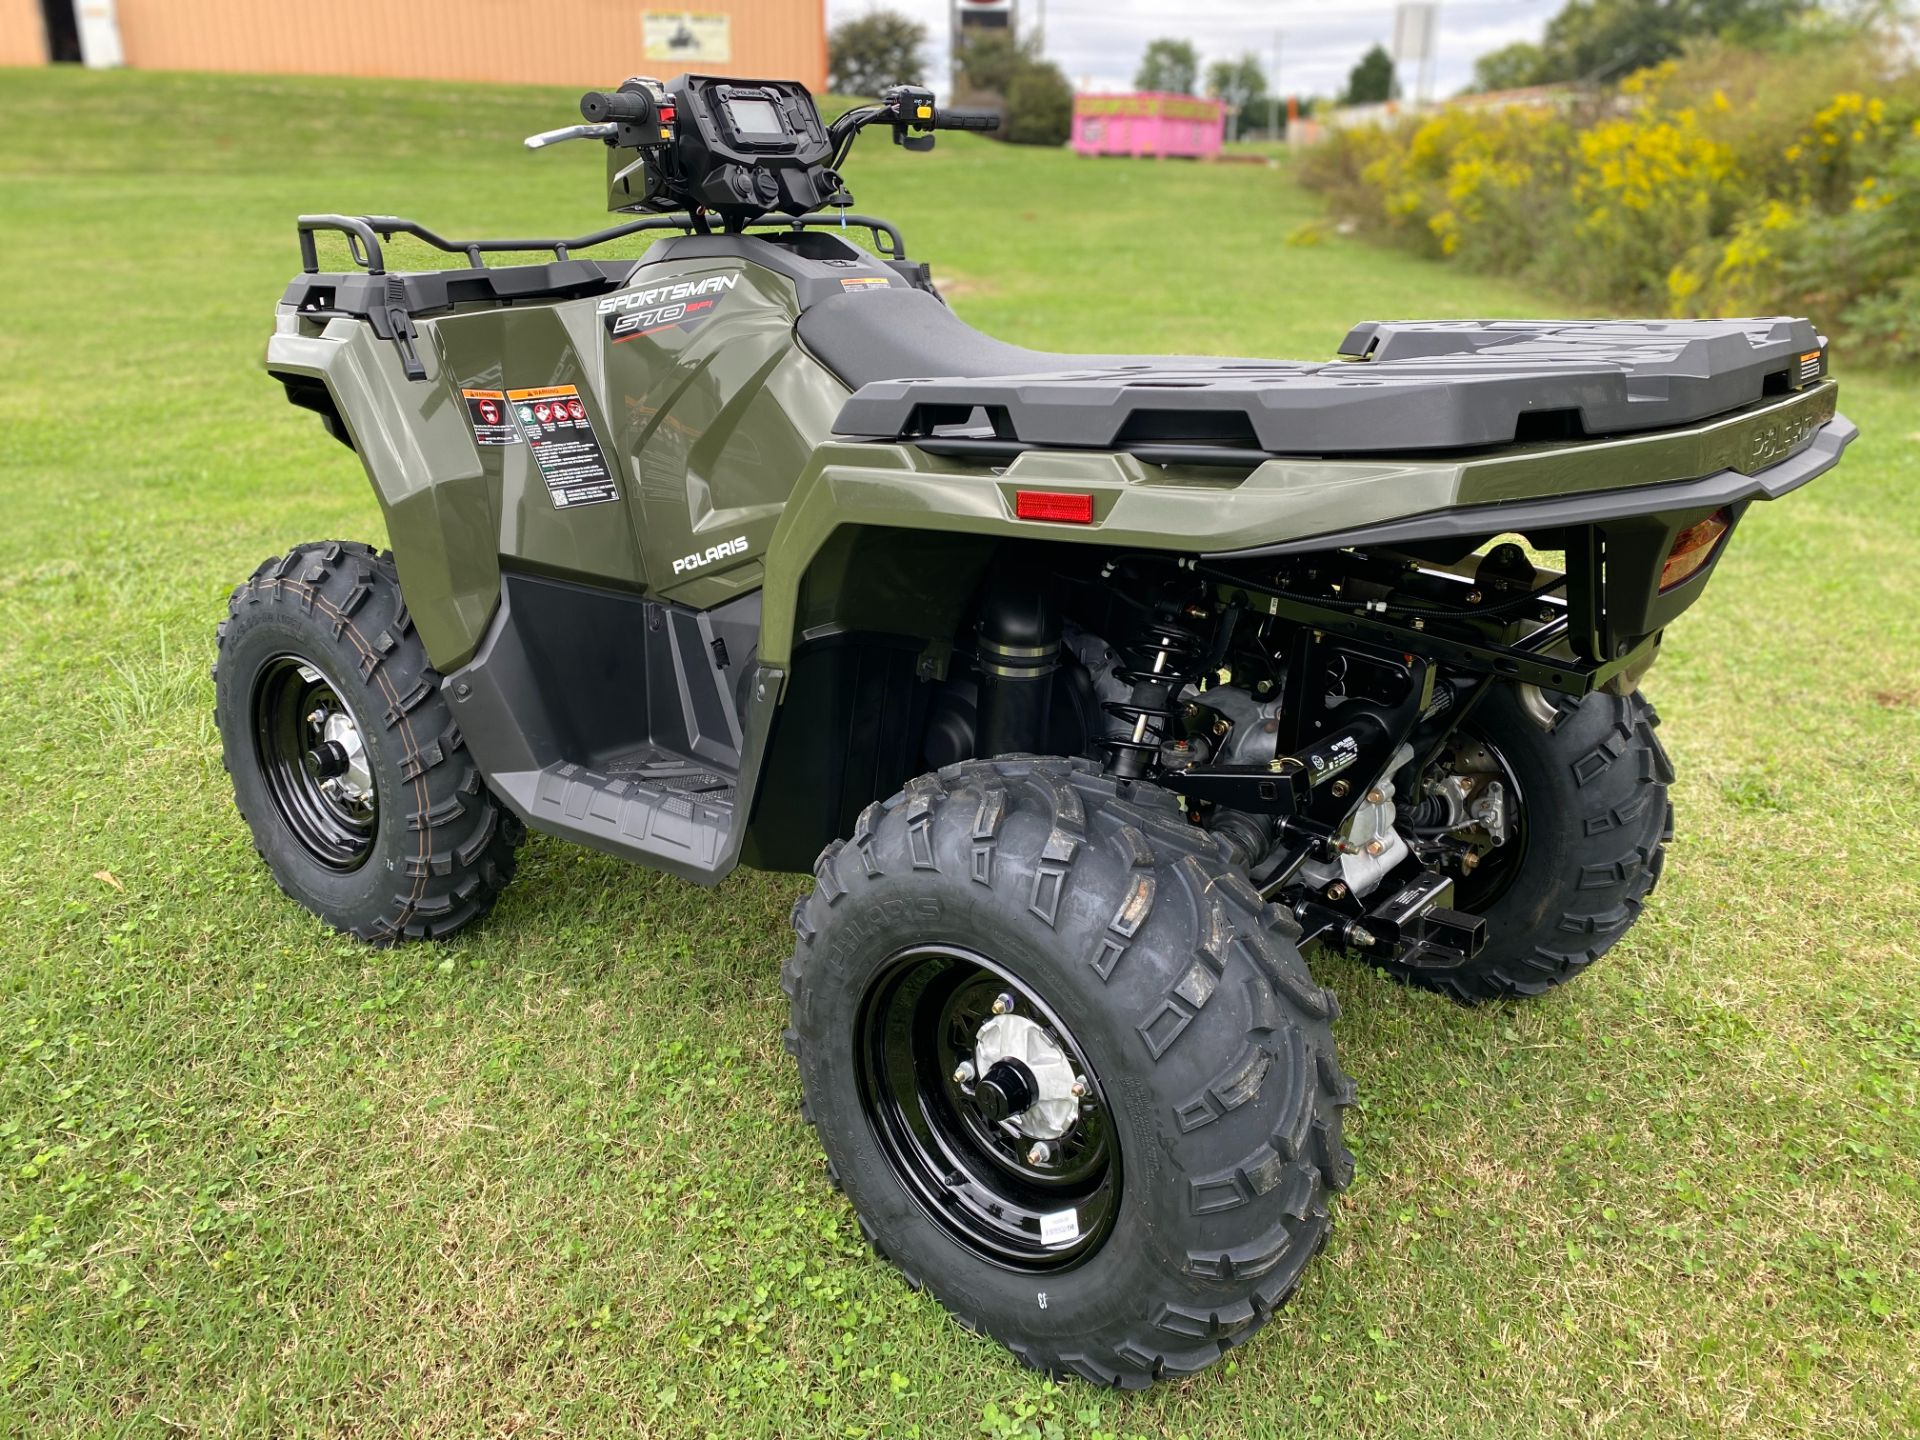 2021 Polaris Sportsman 570 in Greer, South Carolina - Photo 10